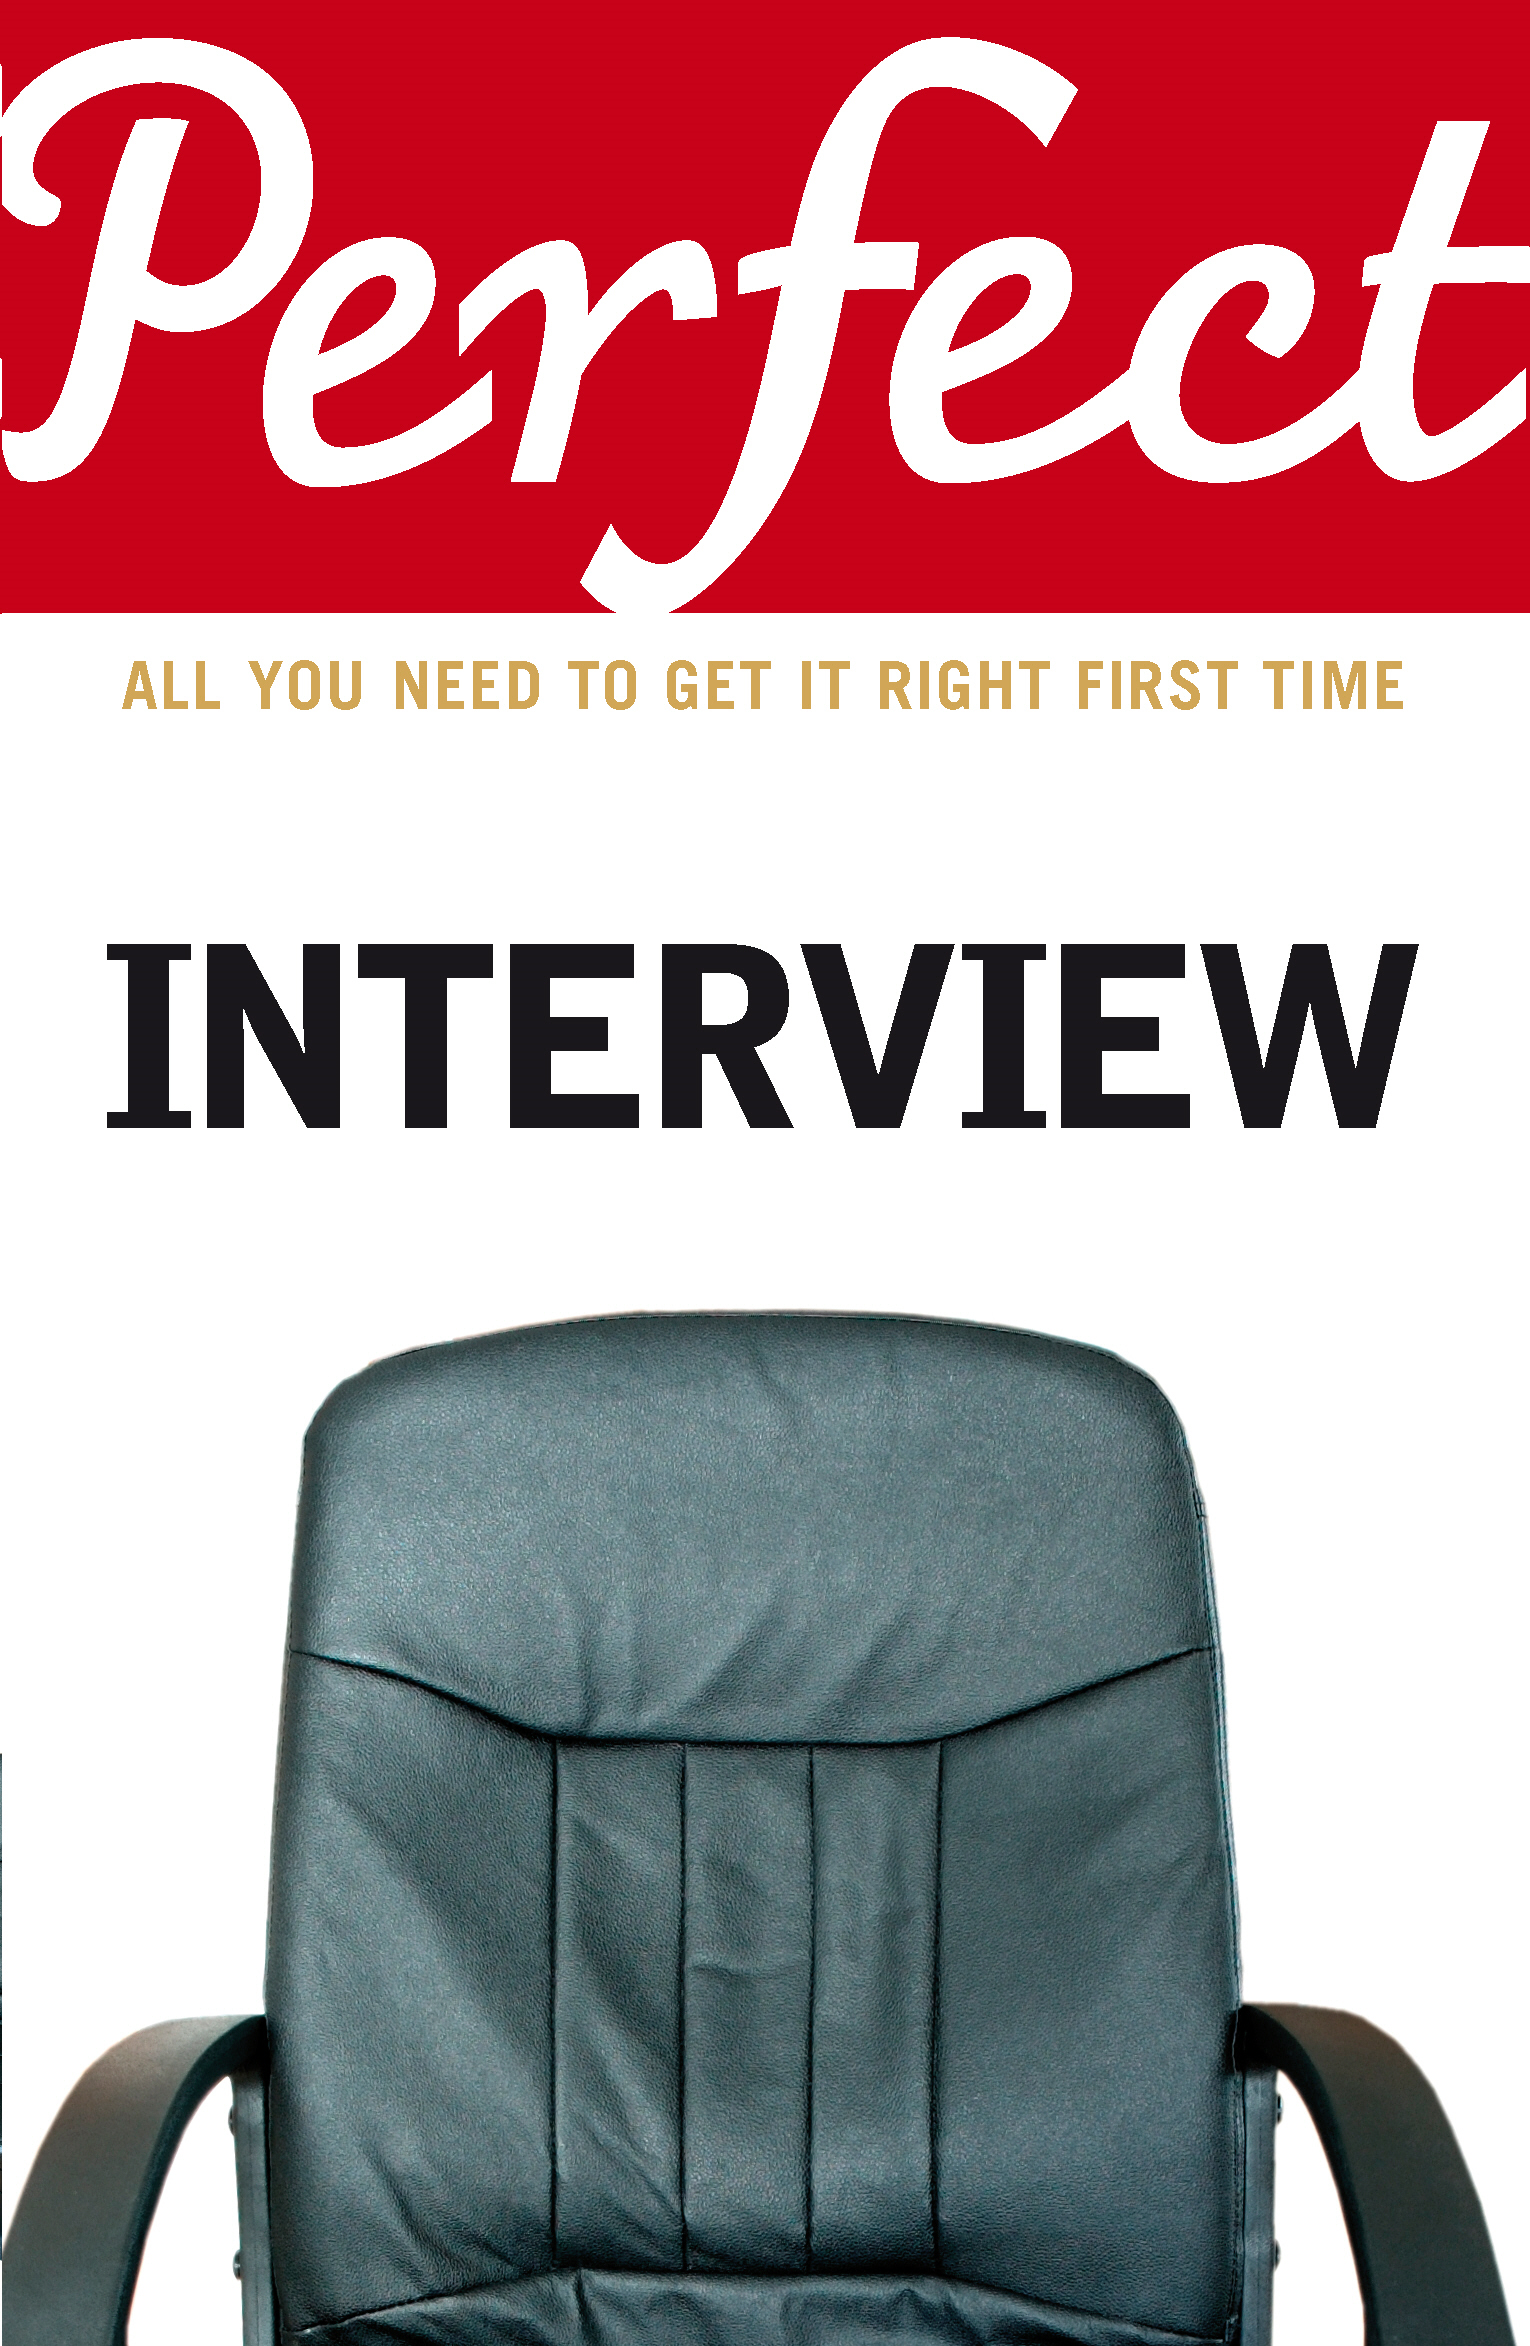 The Perfect Interview All you need to get it right the first time